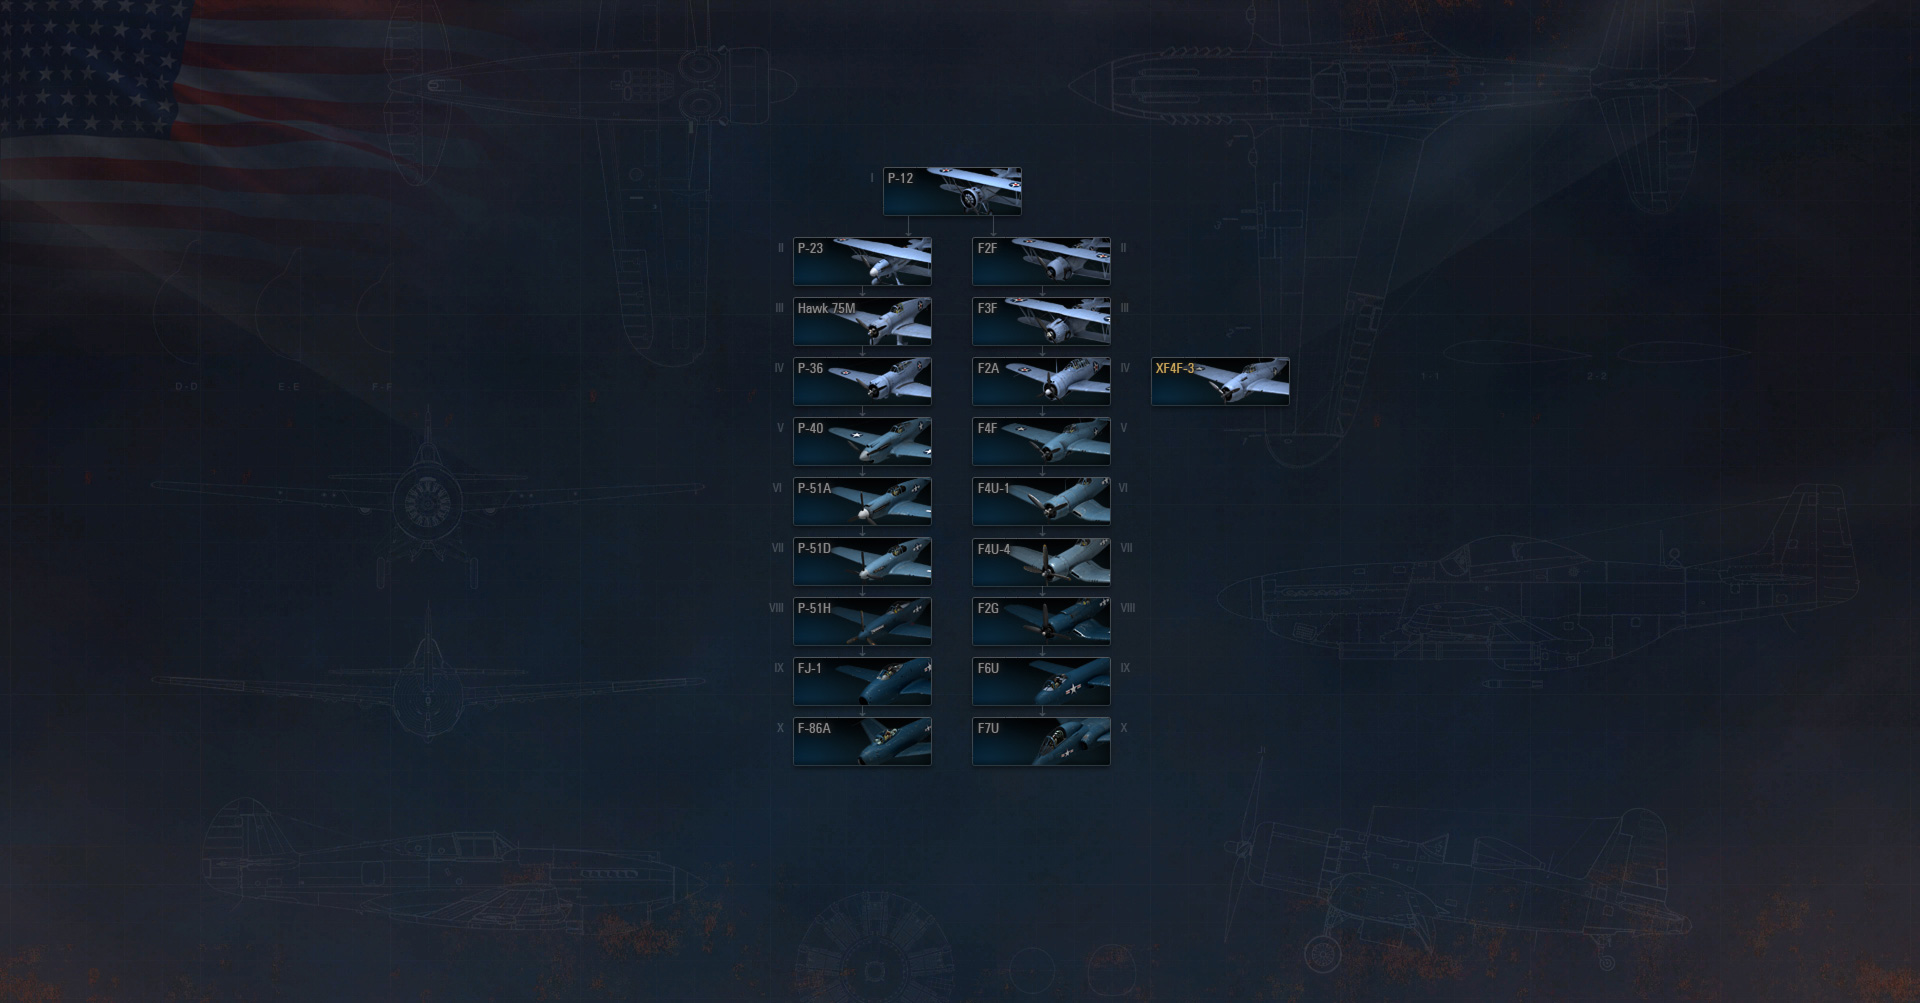 http://worldofwarplanes.ru/dcont/fb/current_news/trees/tree-010_002_us.jpg